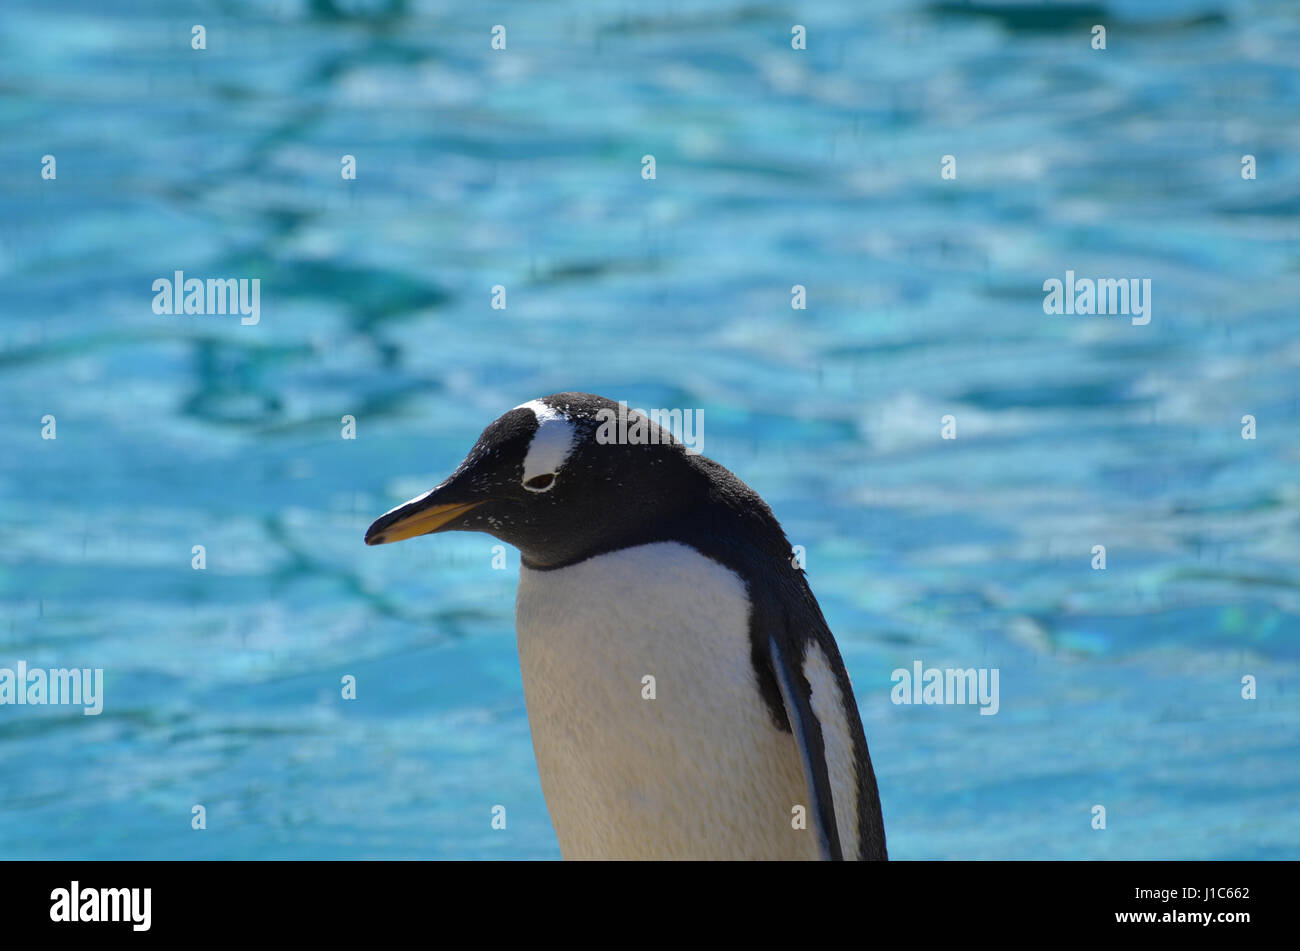 A close-up look at a gentoo penguin. - Stock Image